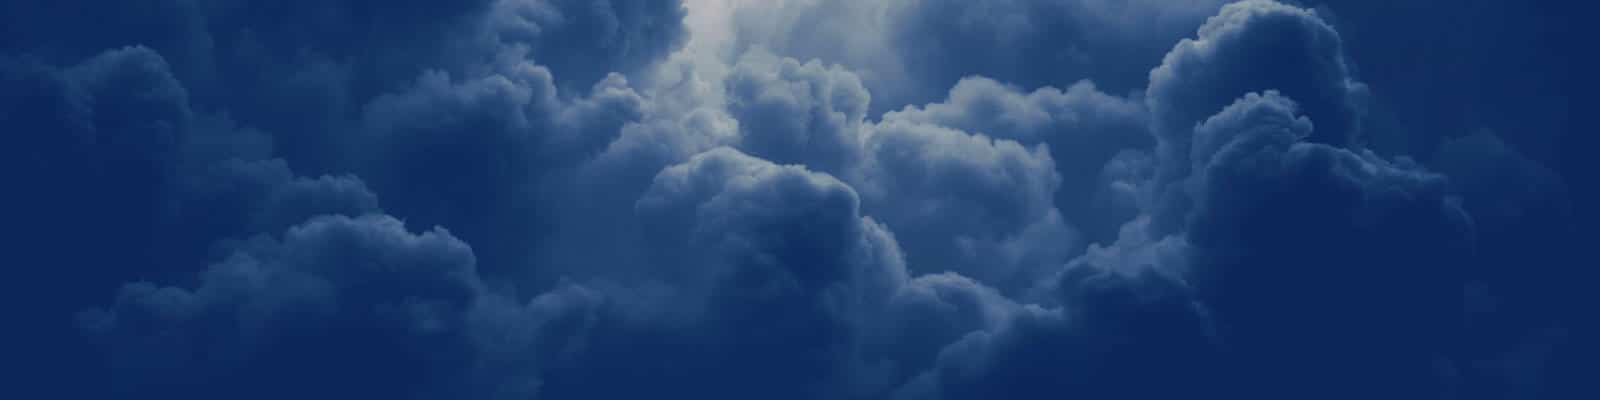 real clouds metaphor for what is cloud computing explainer article